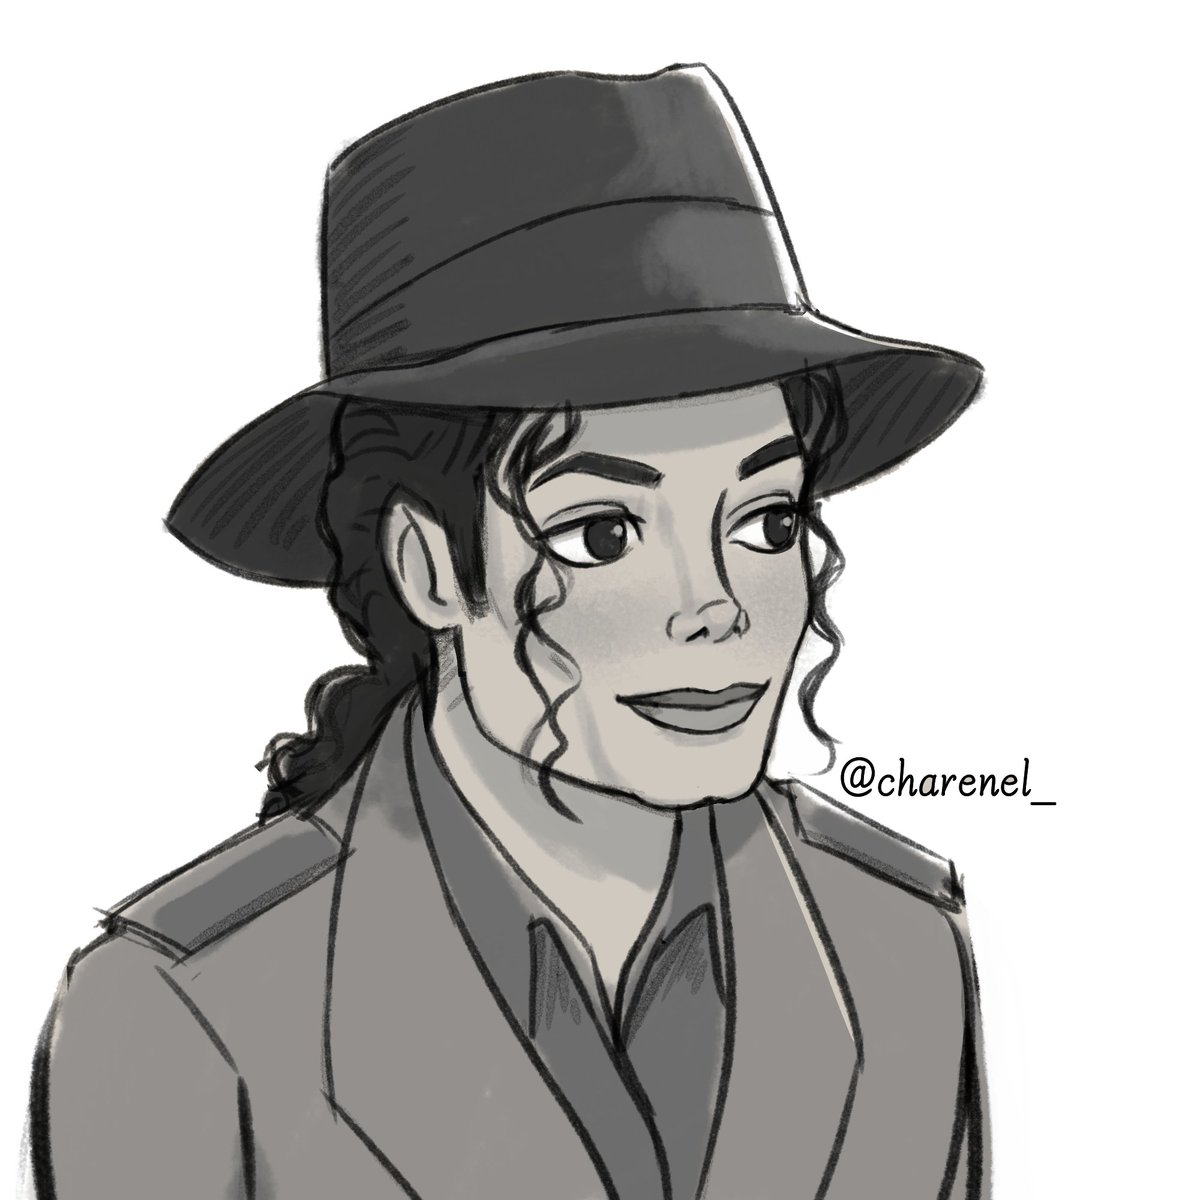 #MJ studies  (I know, the second one is kinda sad ) #michaeljackson #digitaldrawing #art #ArtistOnTwitter #fanart #mjfam #kingofpop #MJInnocent<br>http://pic.twitter.com/HOK9kKXepM